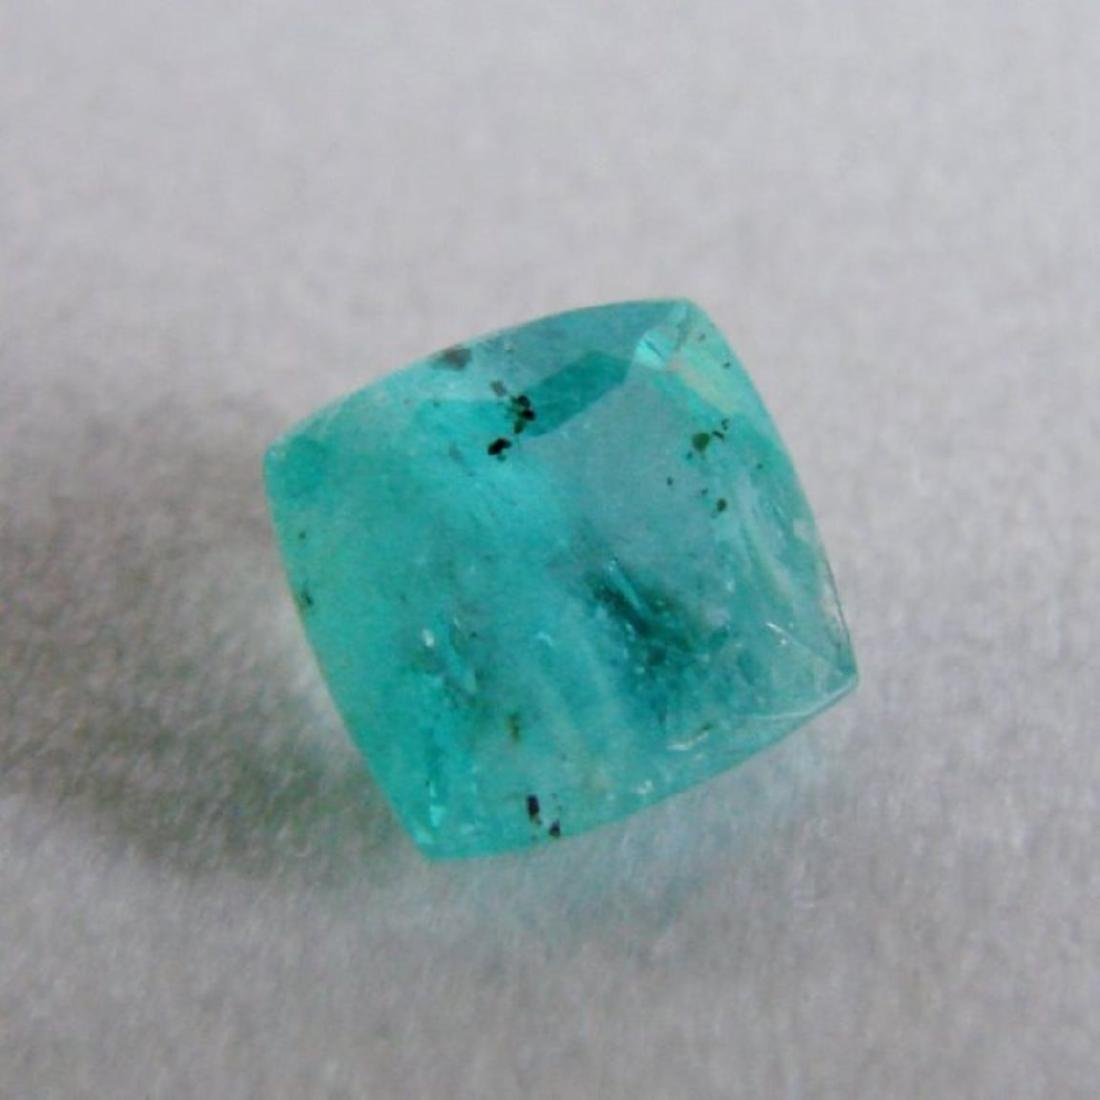 Colombial Emerald Octagon 1.69Ct 7.5x7x4.2 mm